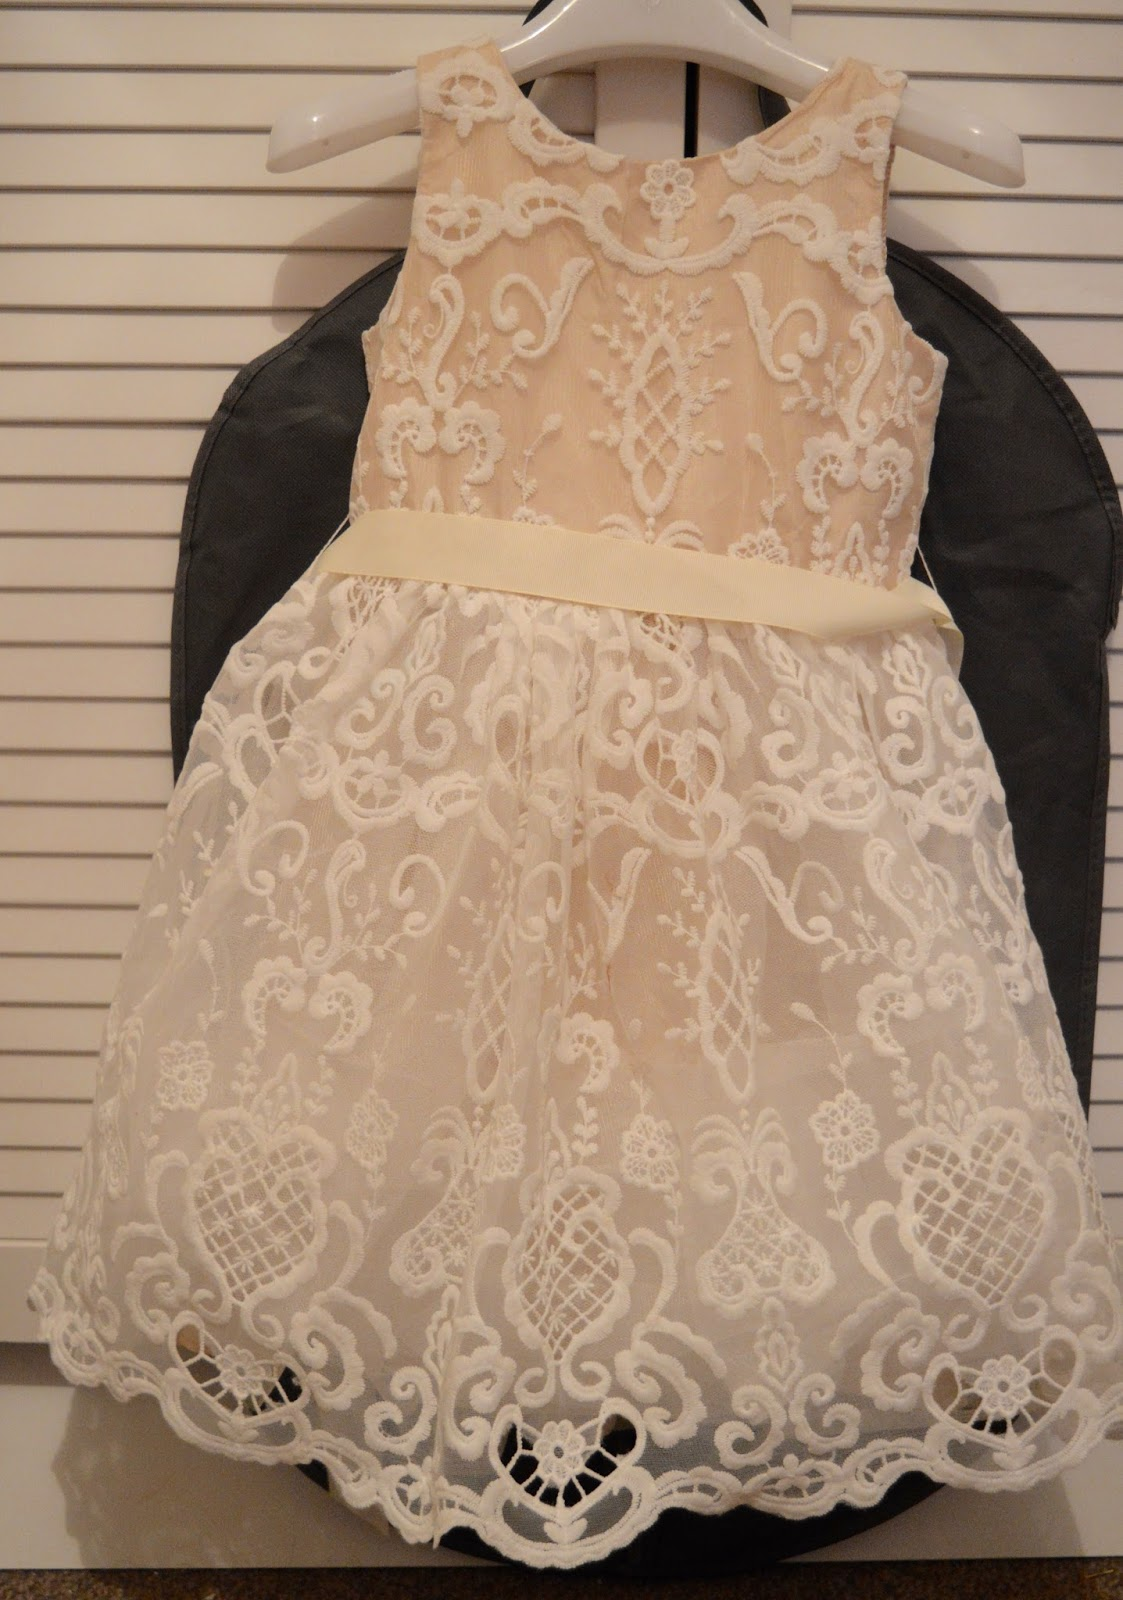 A Girl's Christmas Party Dress from Roco - a review. Perfect for flower girls and weddings